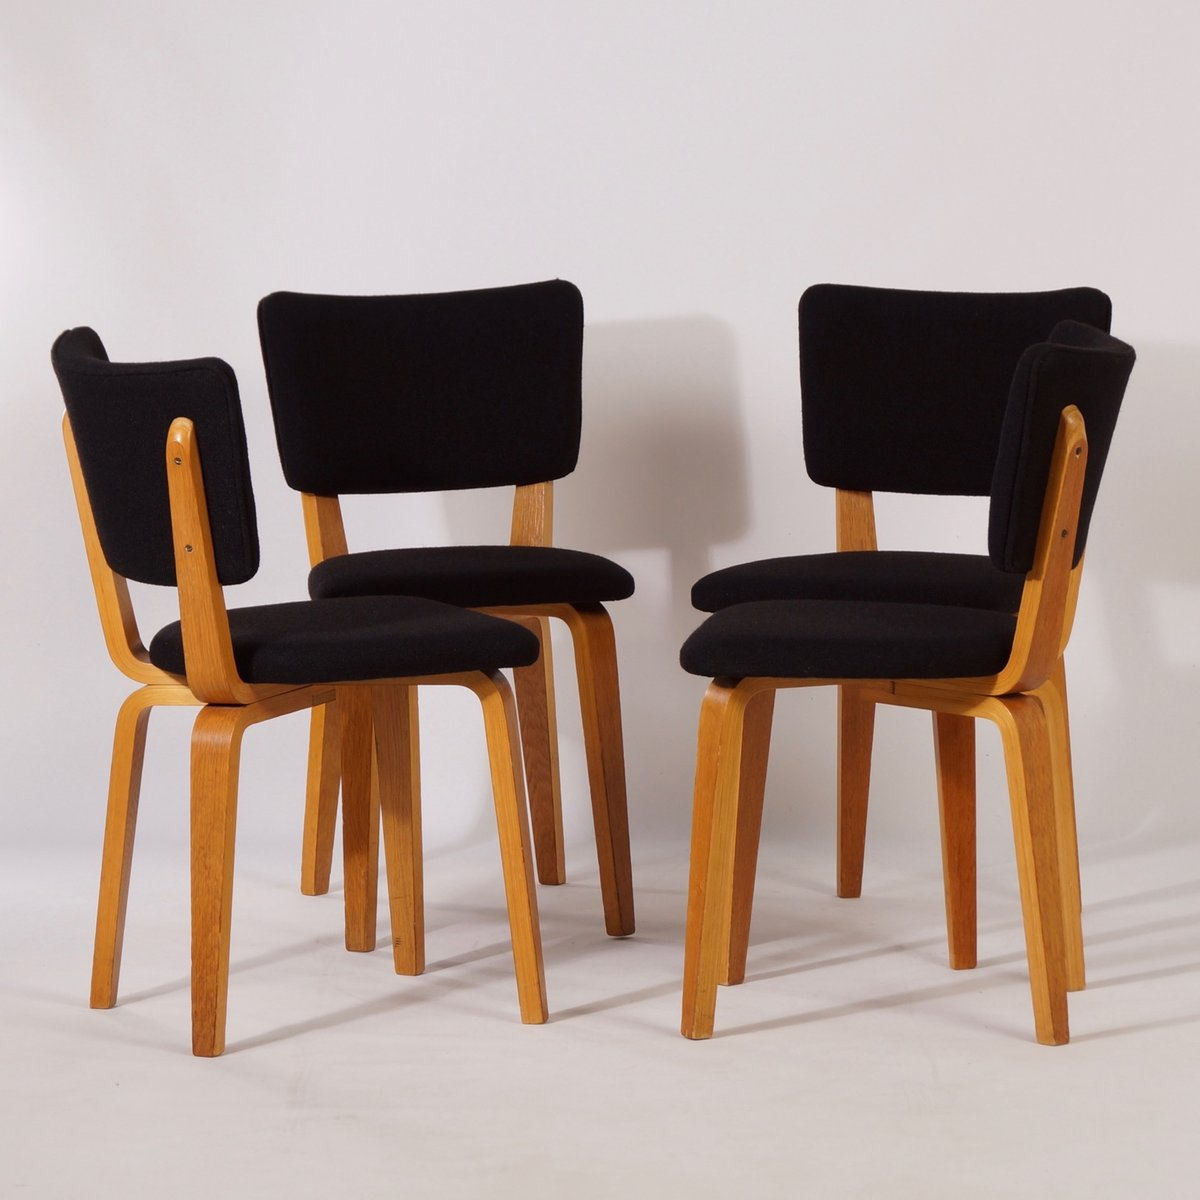 birch dining chairs vintage birch dining chairs by cor alons for den boer 1660